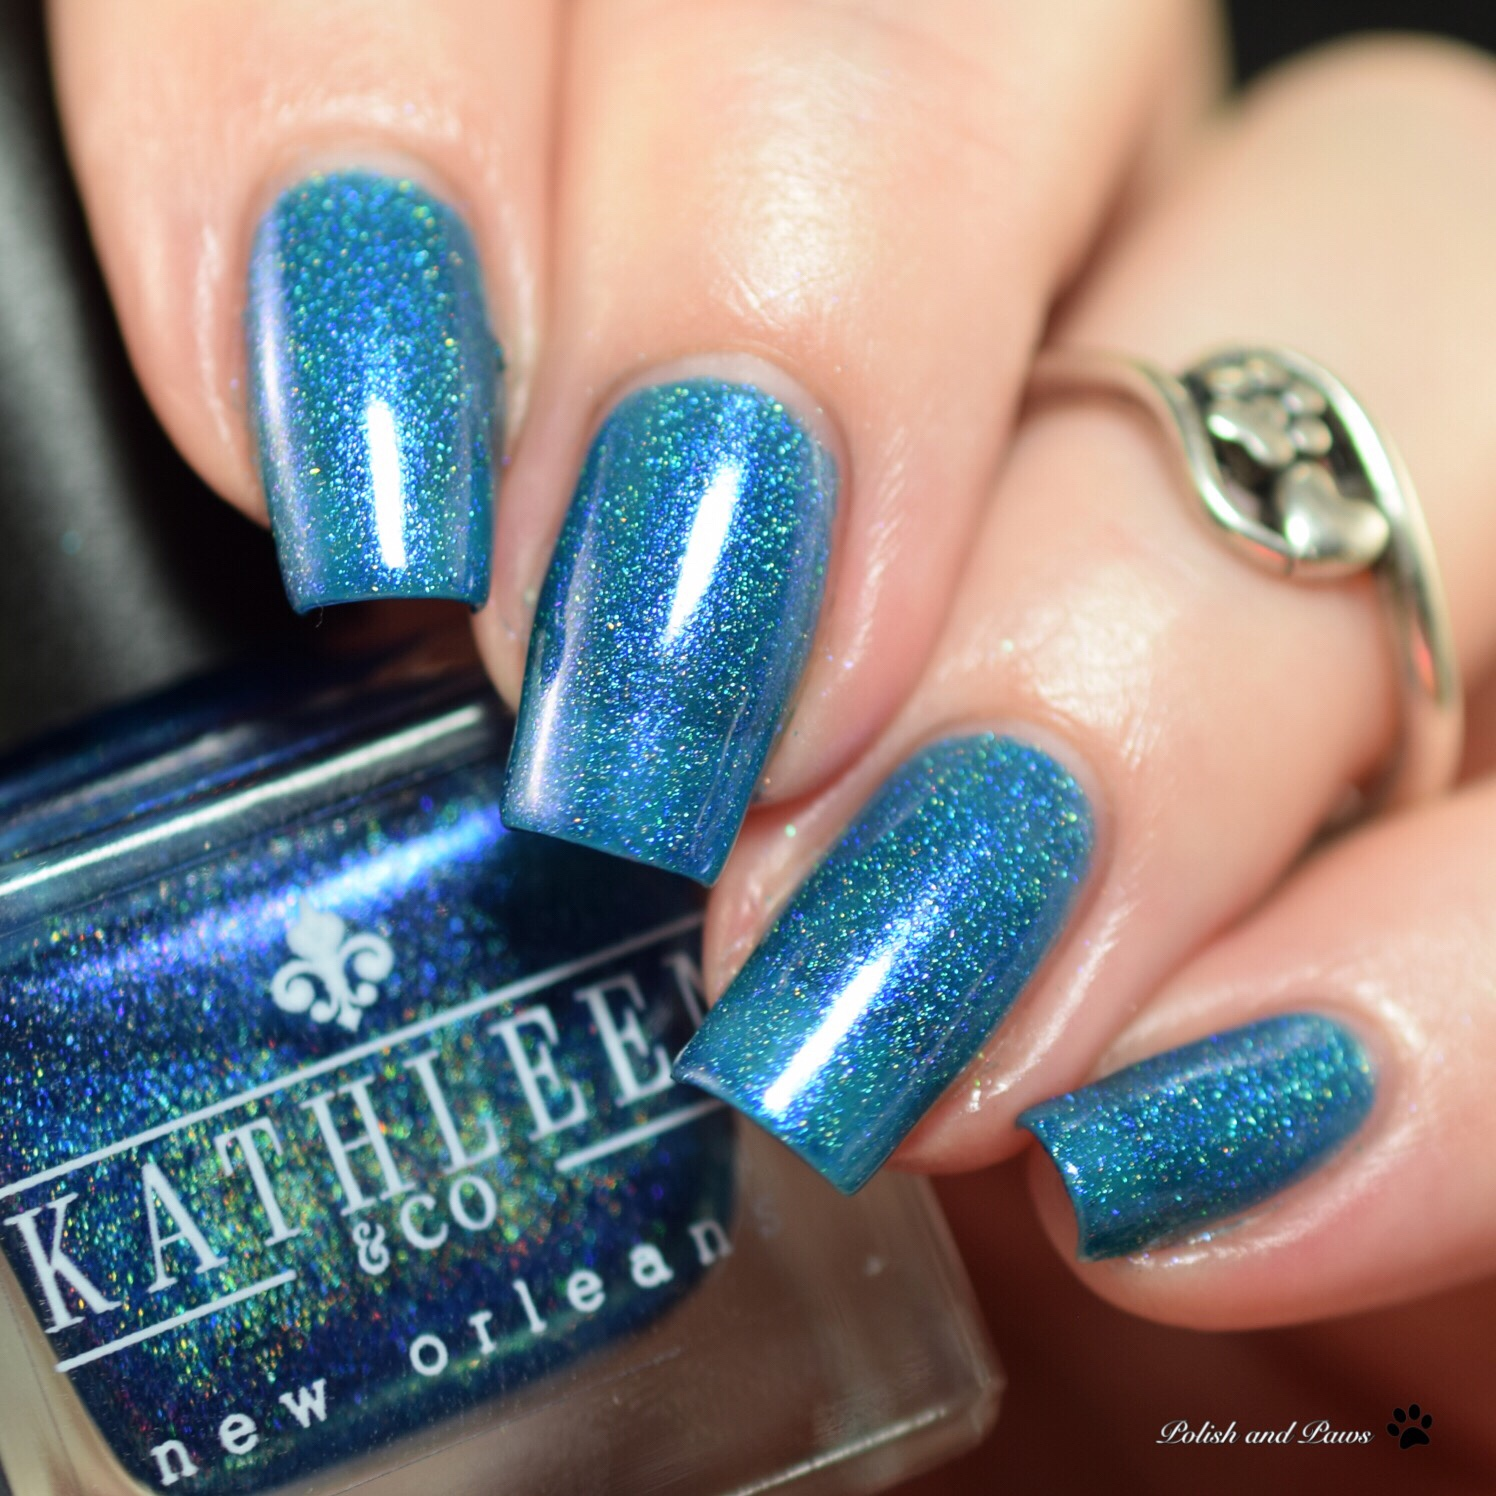 Kathleen & Co Deep Blue Sea